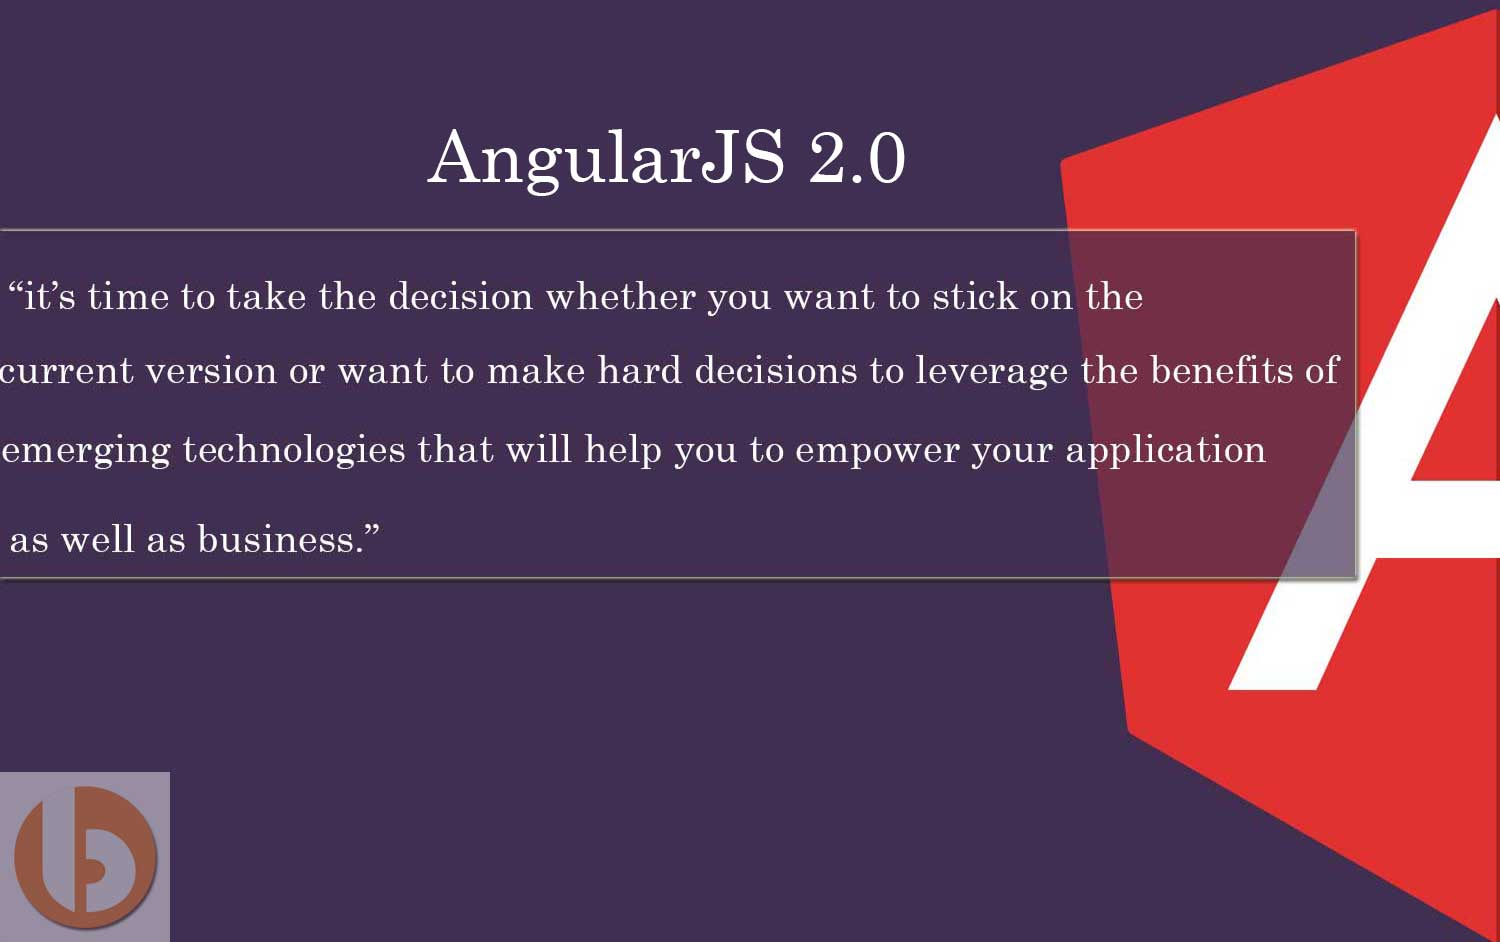 Hire Angular 2 Developer To Improve Your AngularJS Experience